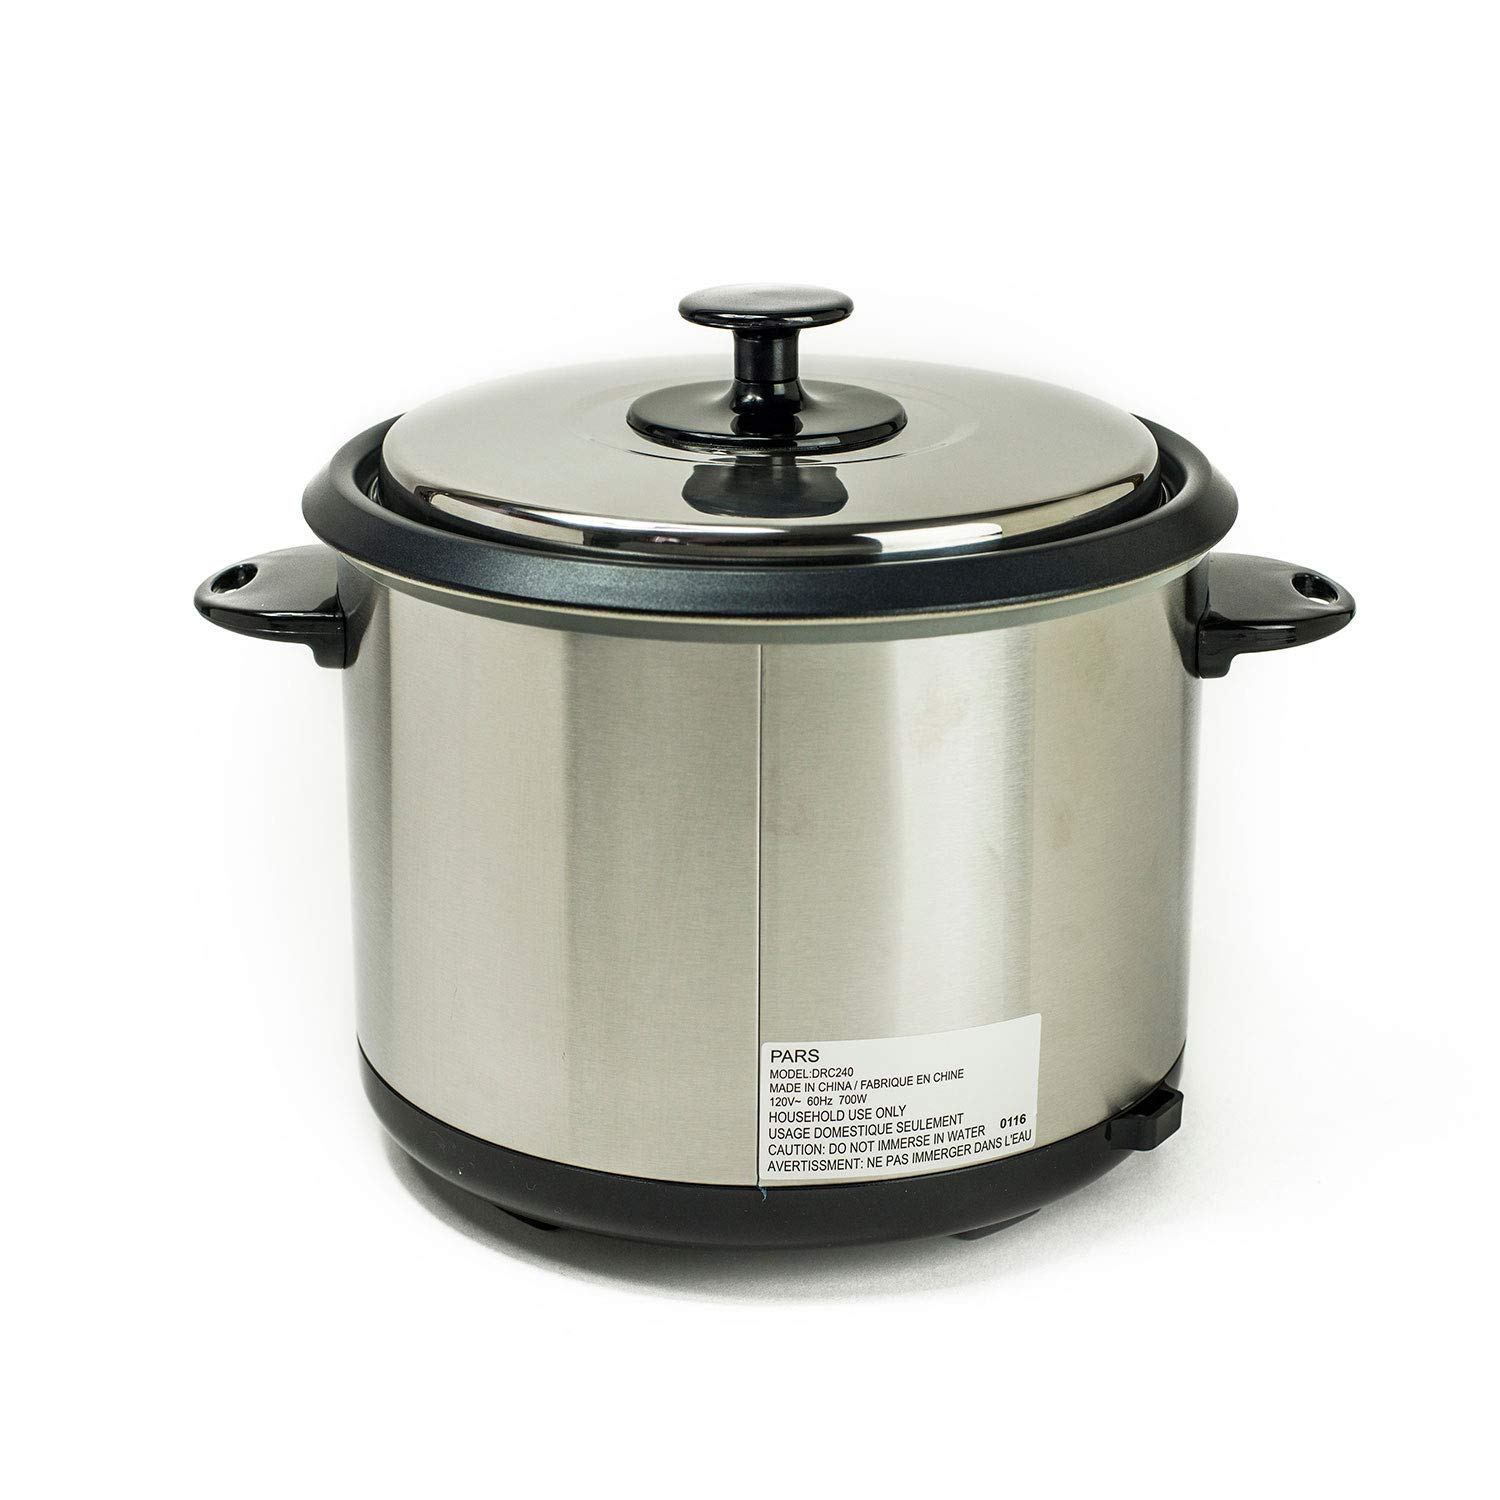 9fefc881cea Amazon.com  Pars Automatic Persian Rice Cooker (15 Cup)  Kitchen   Dining